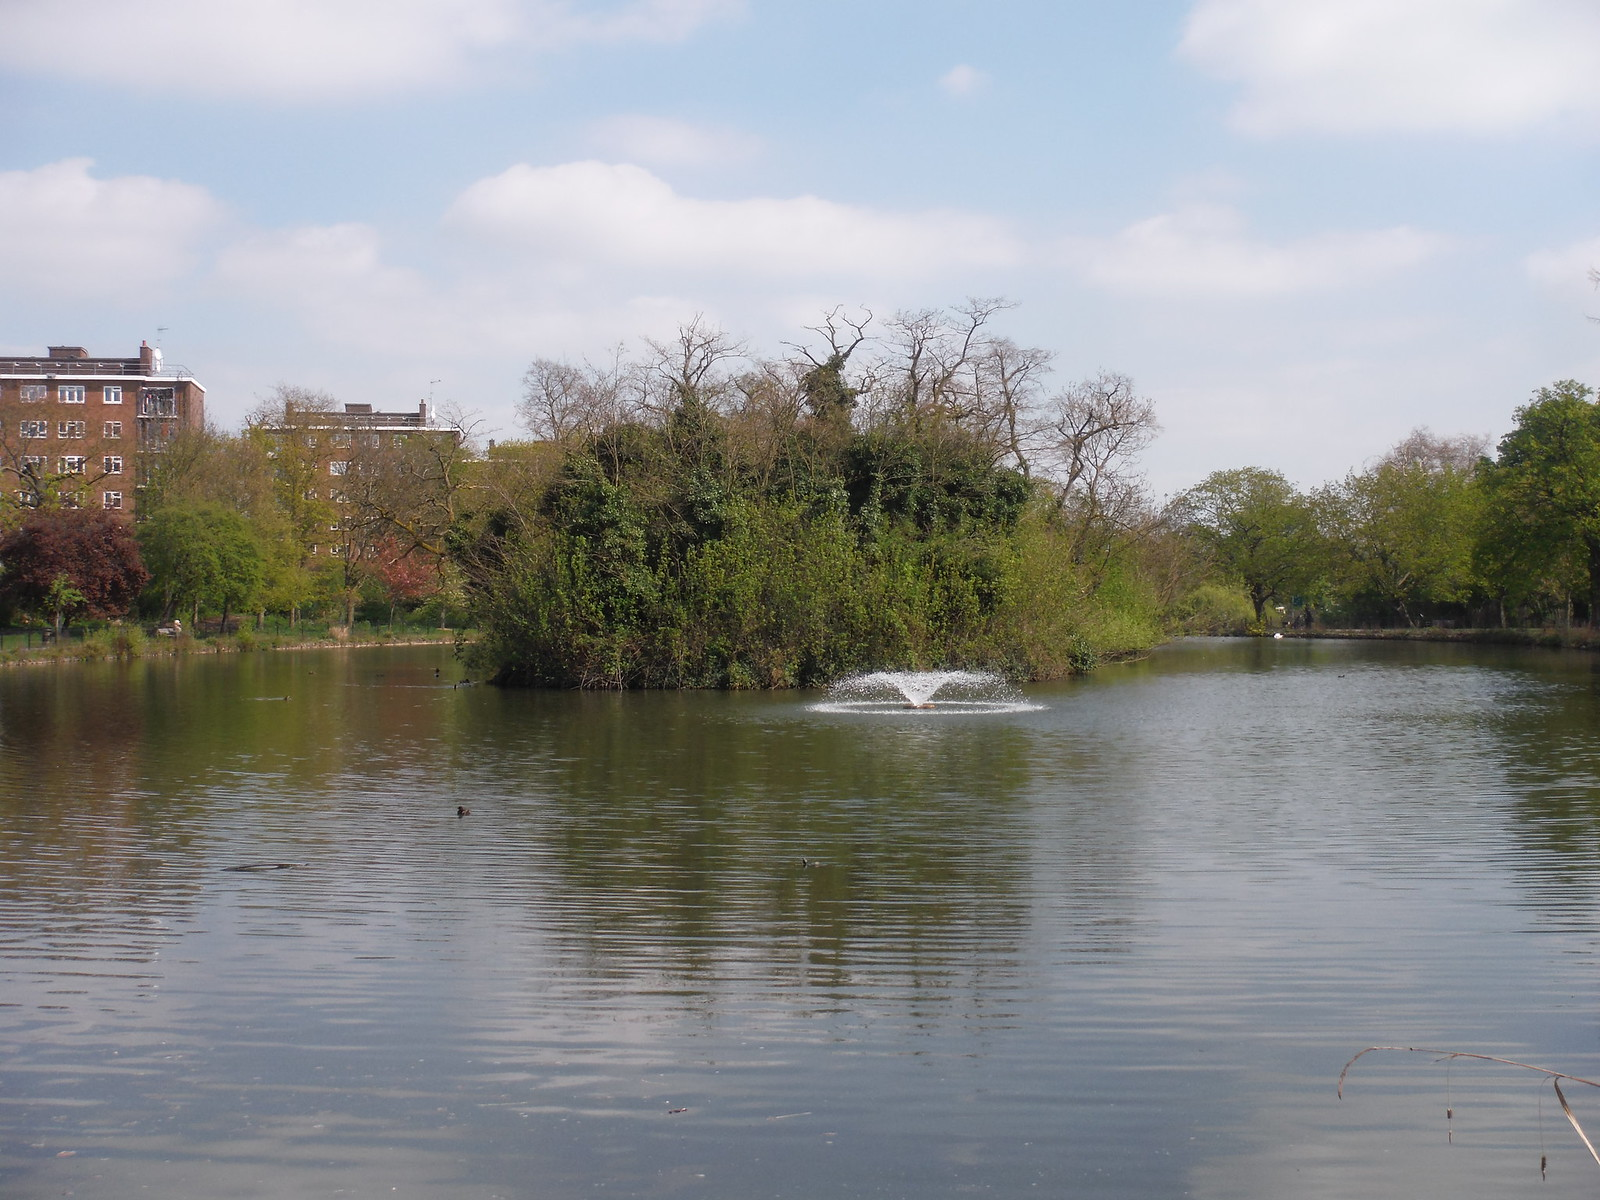 Lake in Clissold Park SWC Short Walk 26 - Woodberry Wetlands (Stoke Newington Reservoirs) [Alternative Ending]